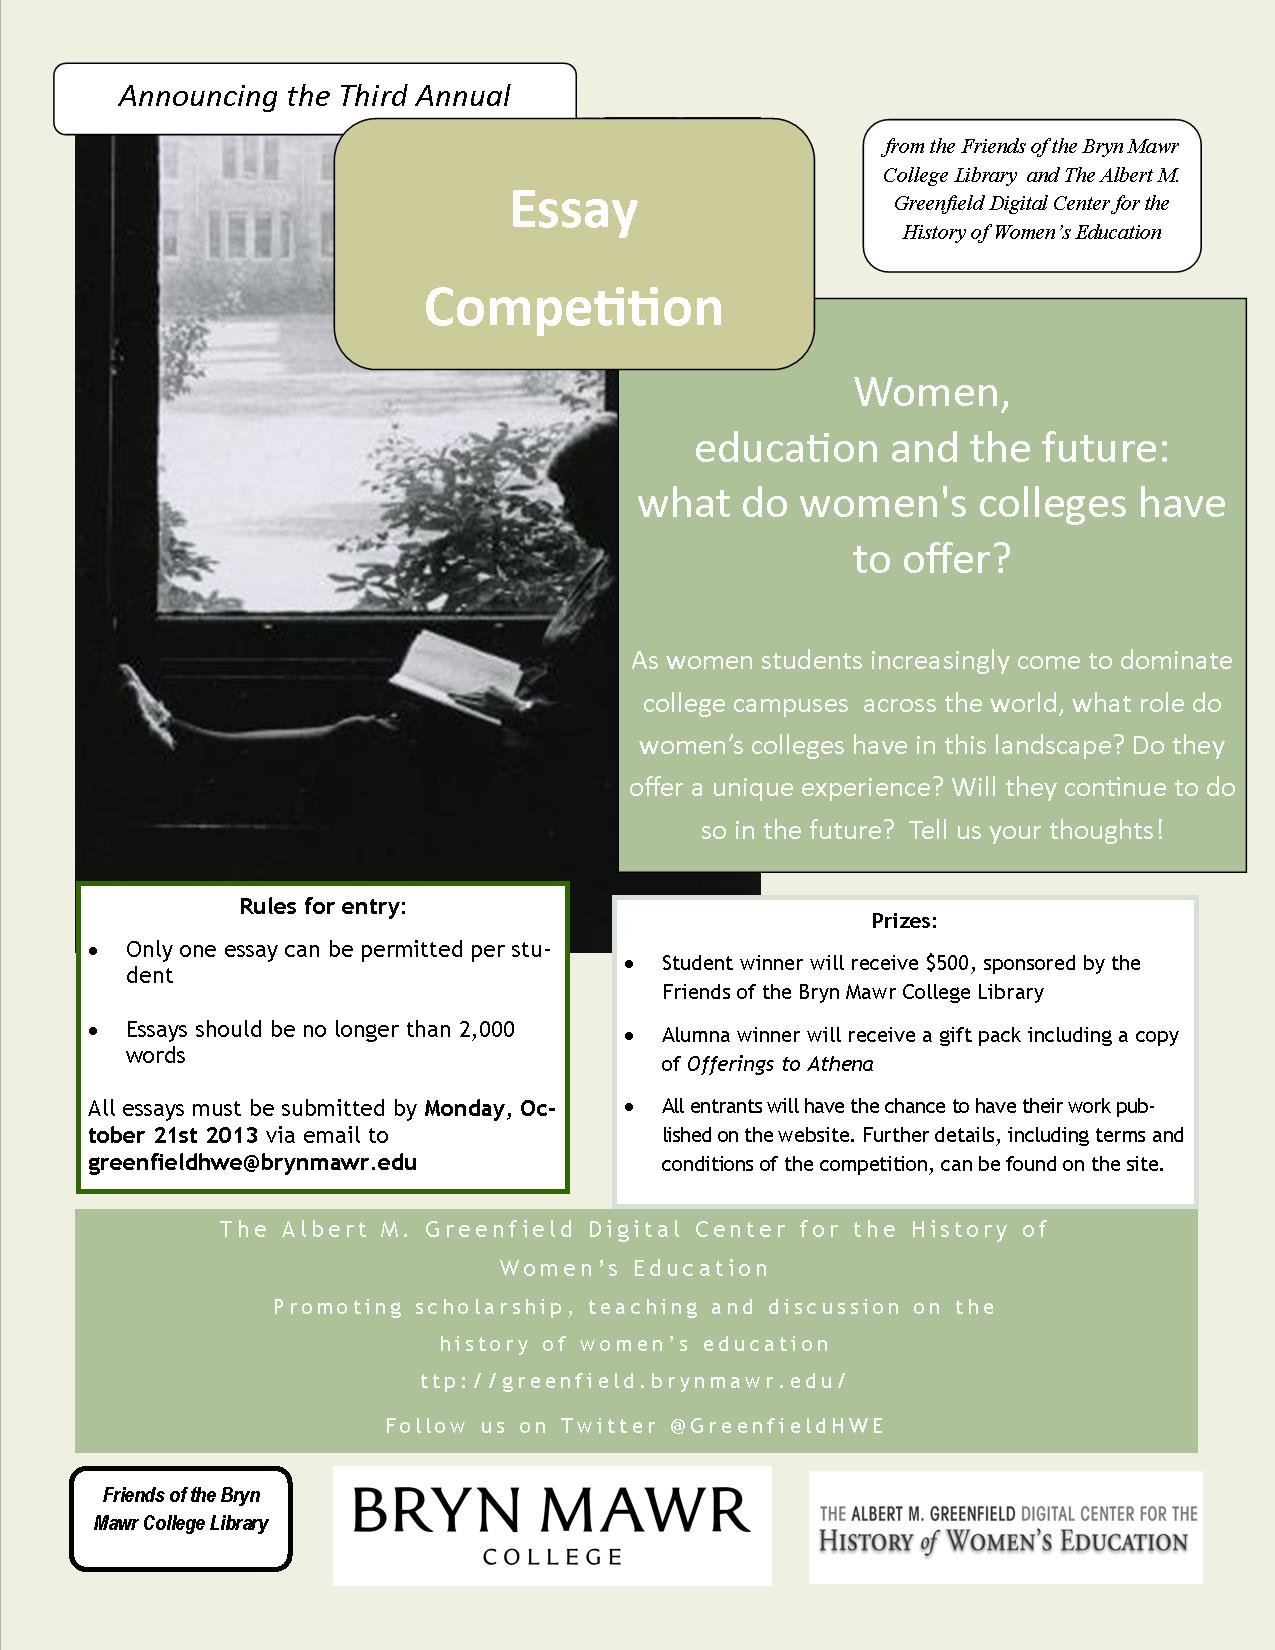 essay competition educating women essay competition poster 2013